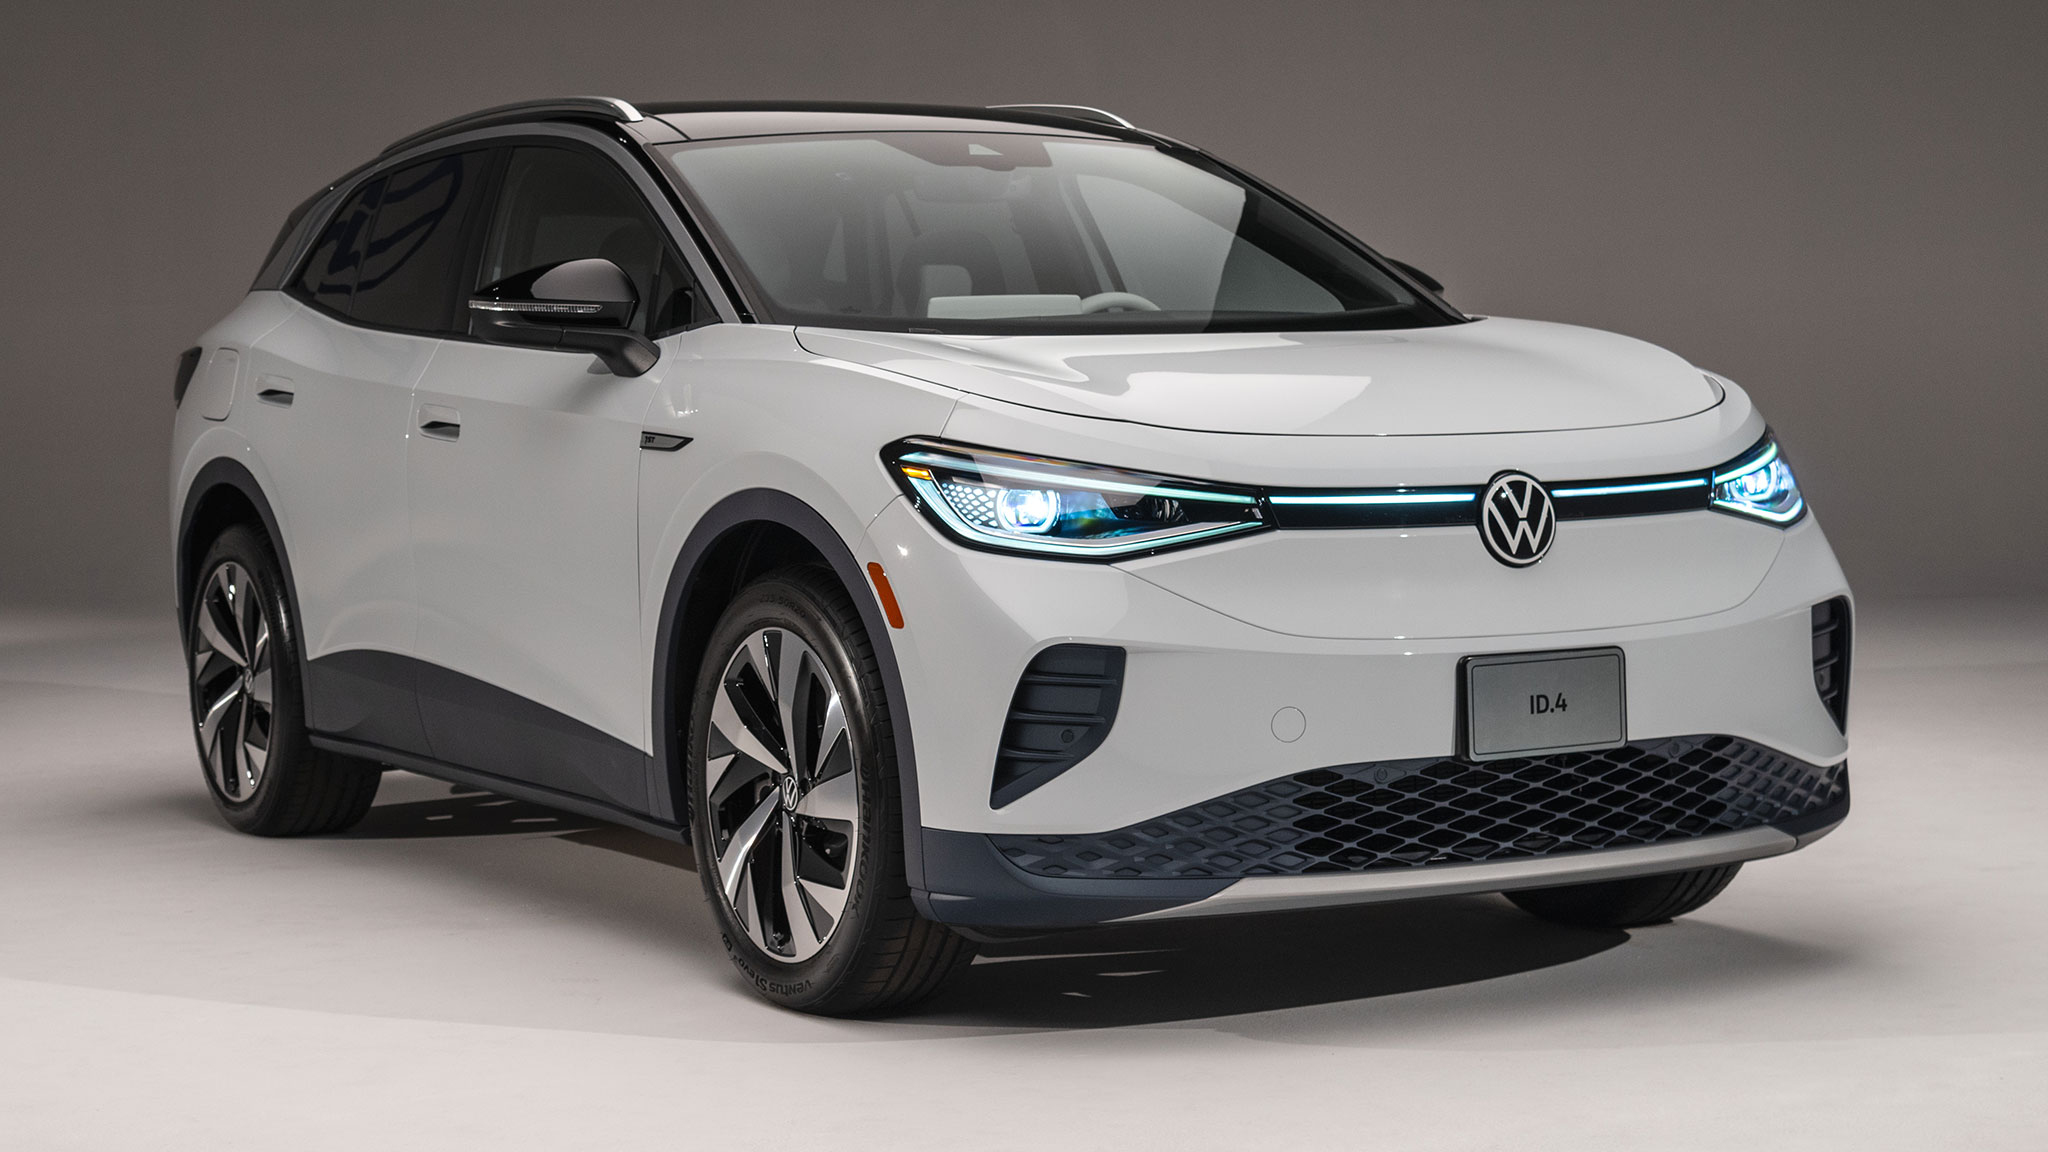 2021 Volkswagen ID4 First Look Price Range For The EV SUV